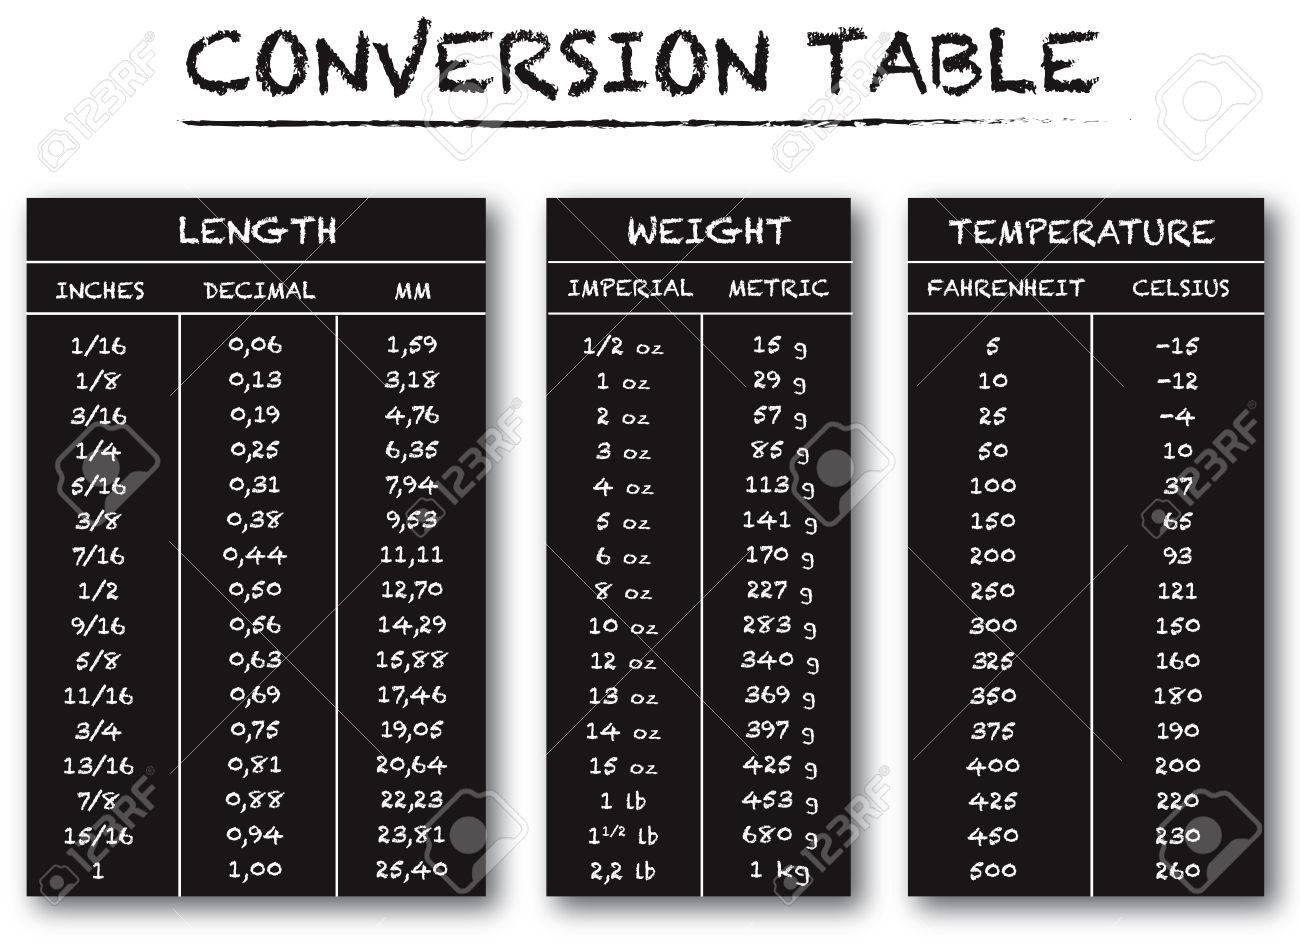 Conversion table chart vector for length weight and temperature conversion table chart vector for length weight and temperature version 10 with drop shadow stock vector nvjuhfo Images